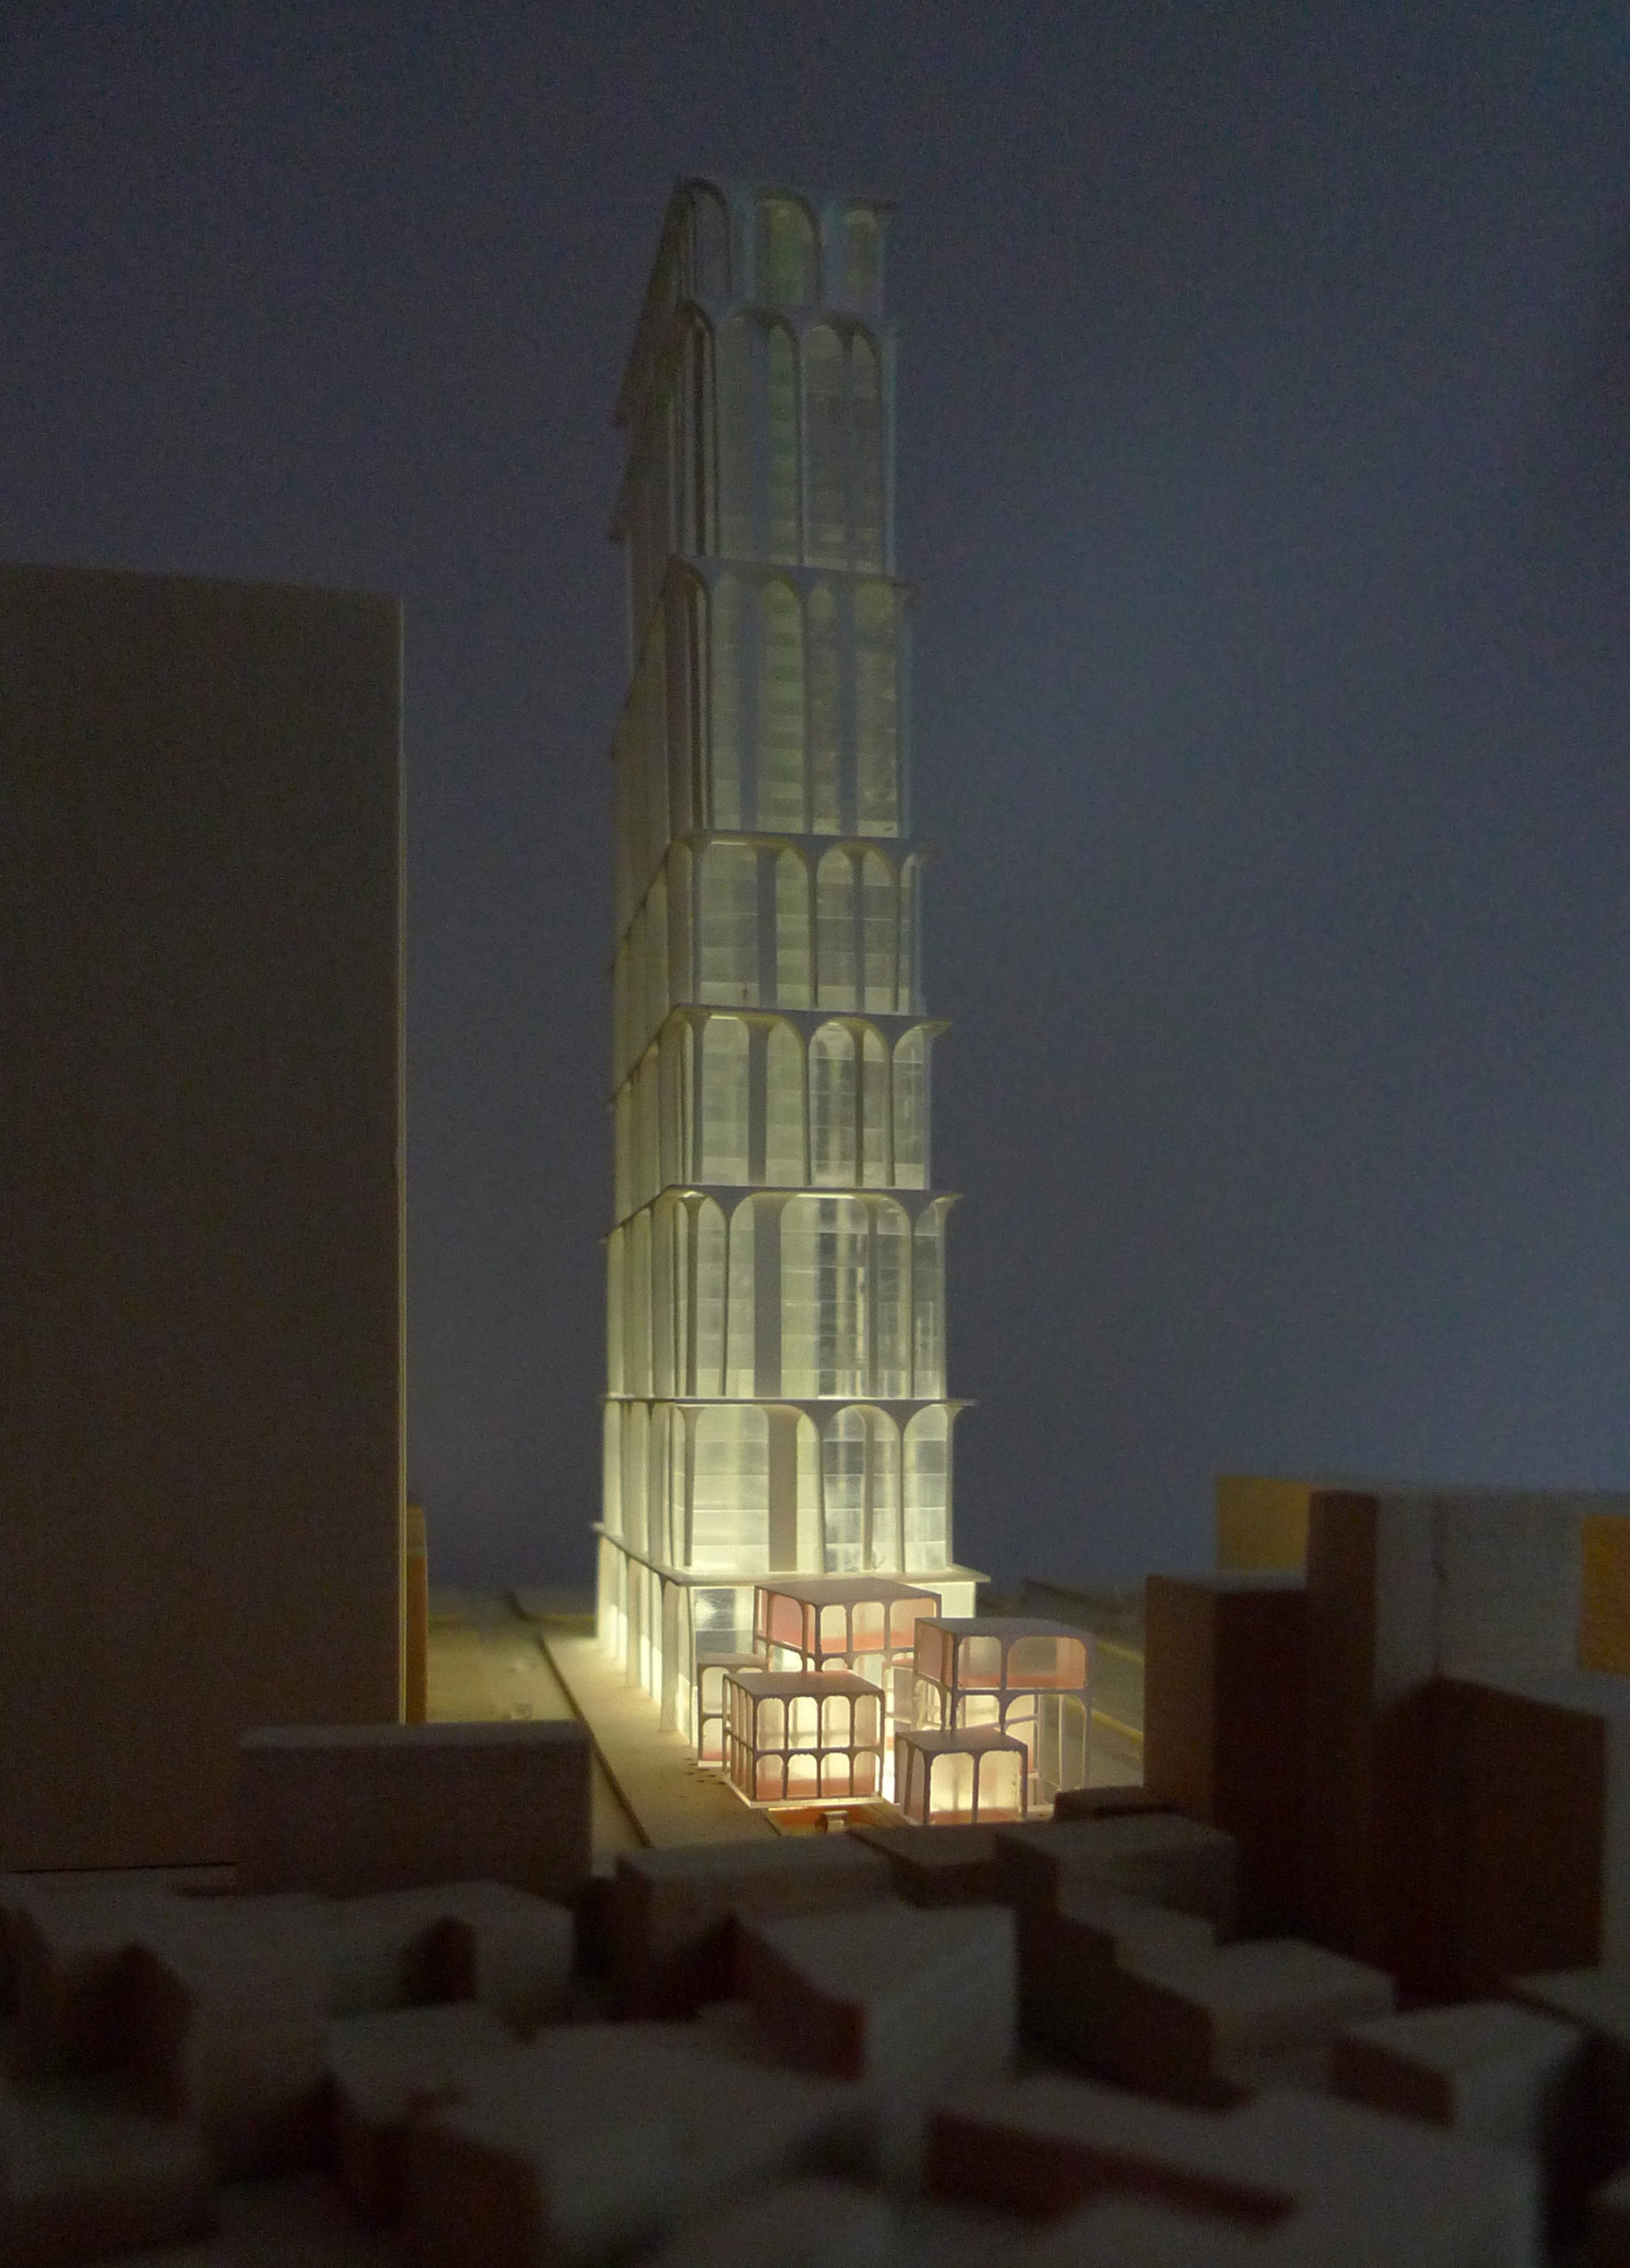 spatial practice architecture office Los Angeles Hong Kong arcade residential tower kaohsiung taiwan model retail night